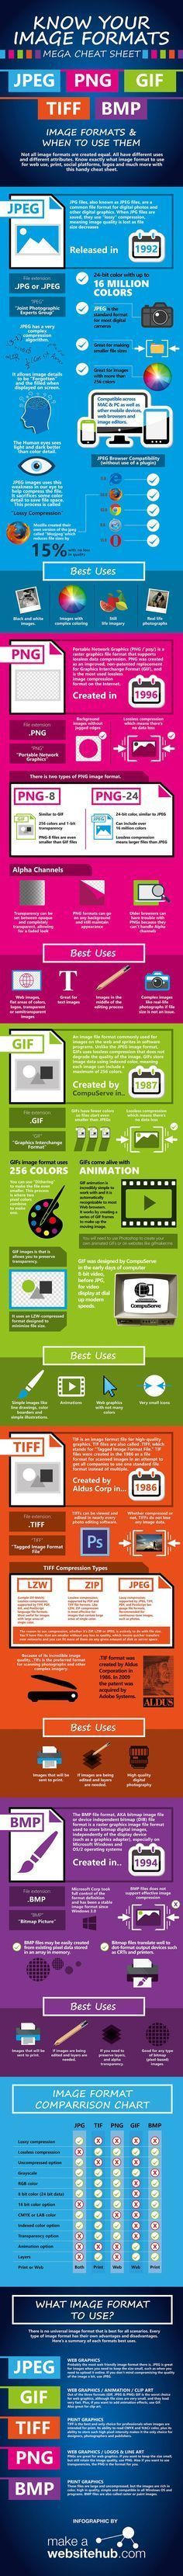 jpg png gif bmp tiff mega cheat sheet The Ultimate Image Format Cheat Sheet (Infographic)